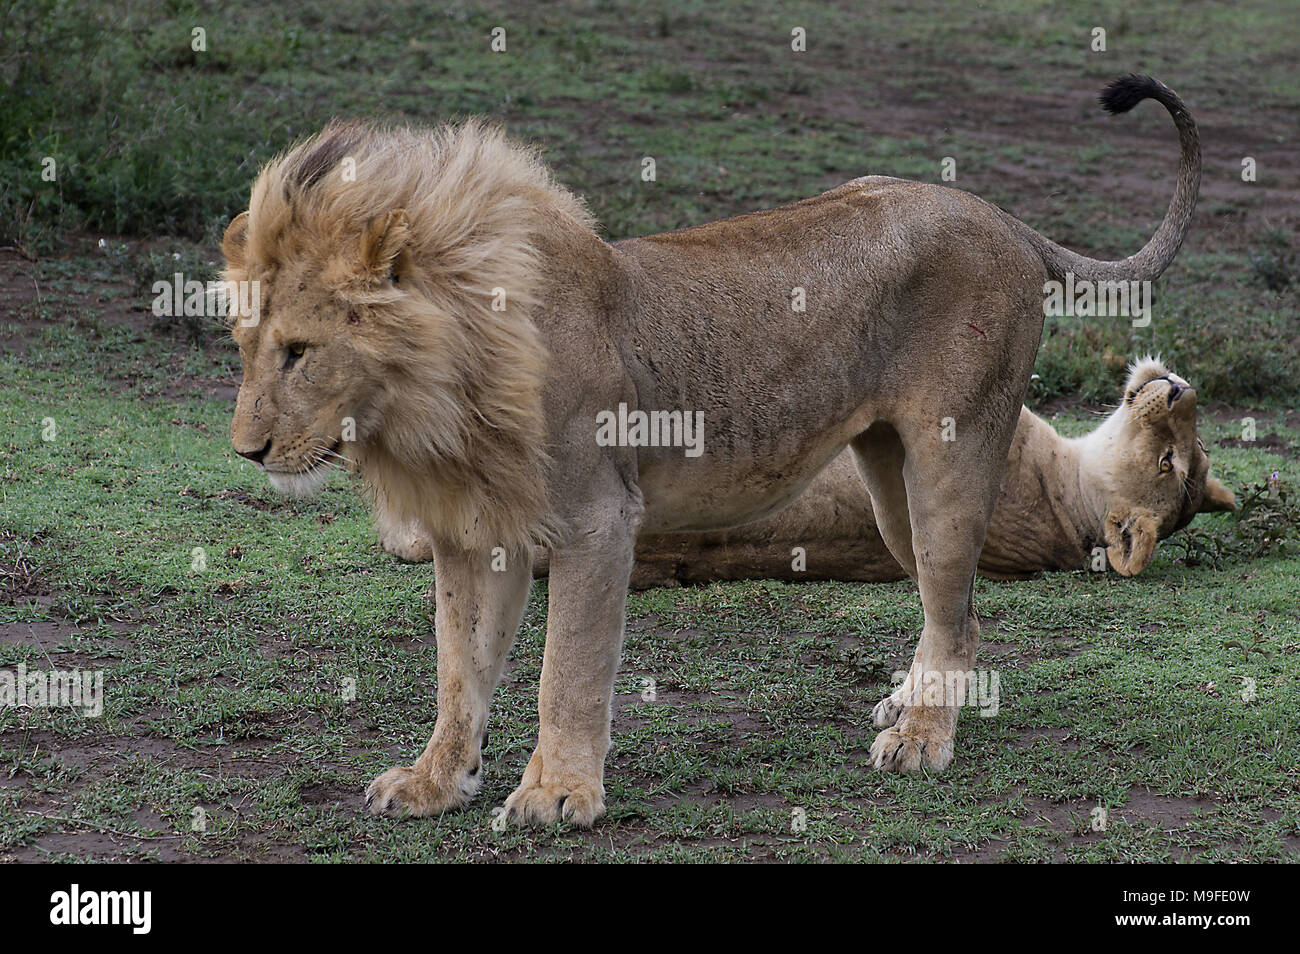 Male lion standing in front of a lioness just after mating in the Serengeti, Arush, Northern Tanzania, Africa - Stock Image